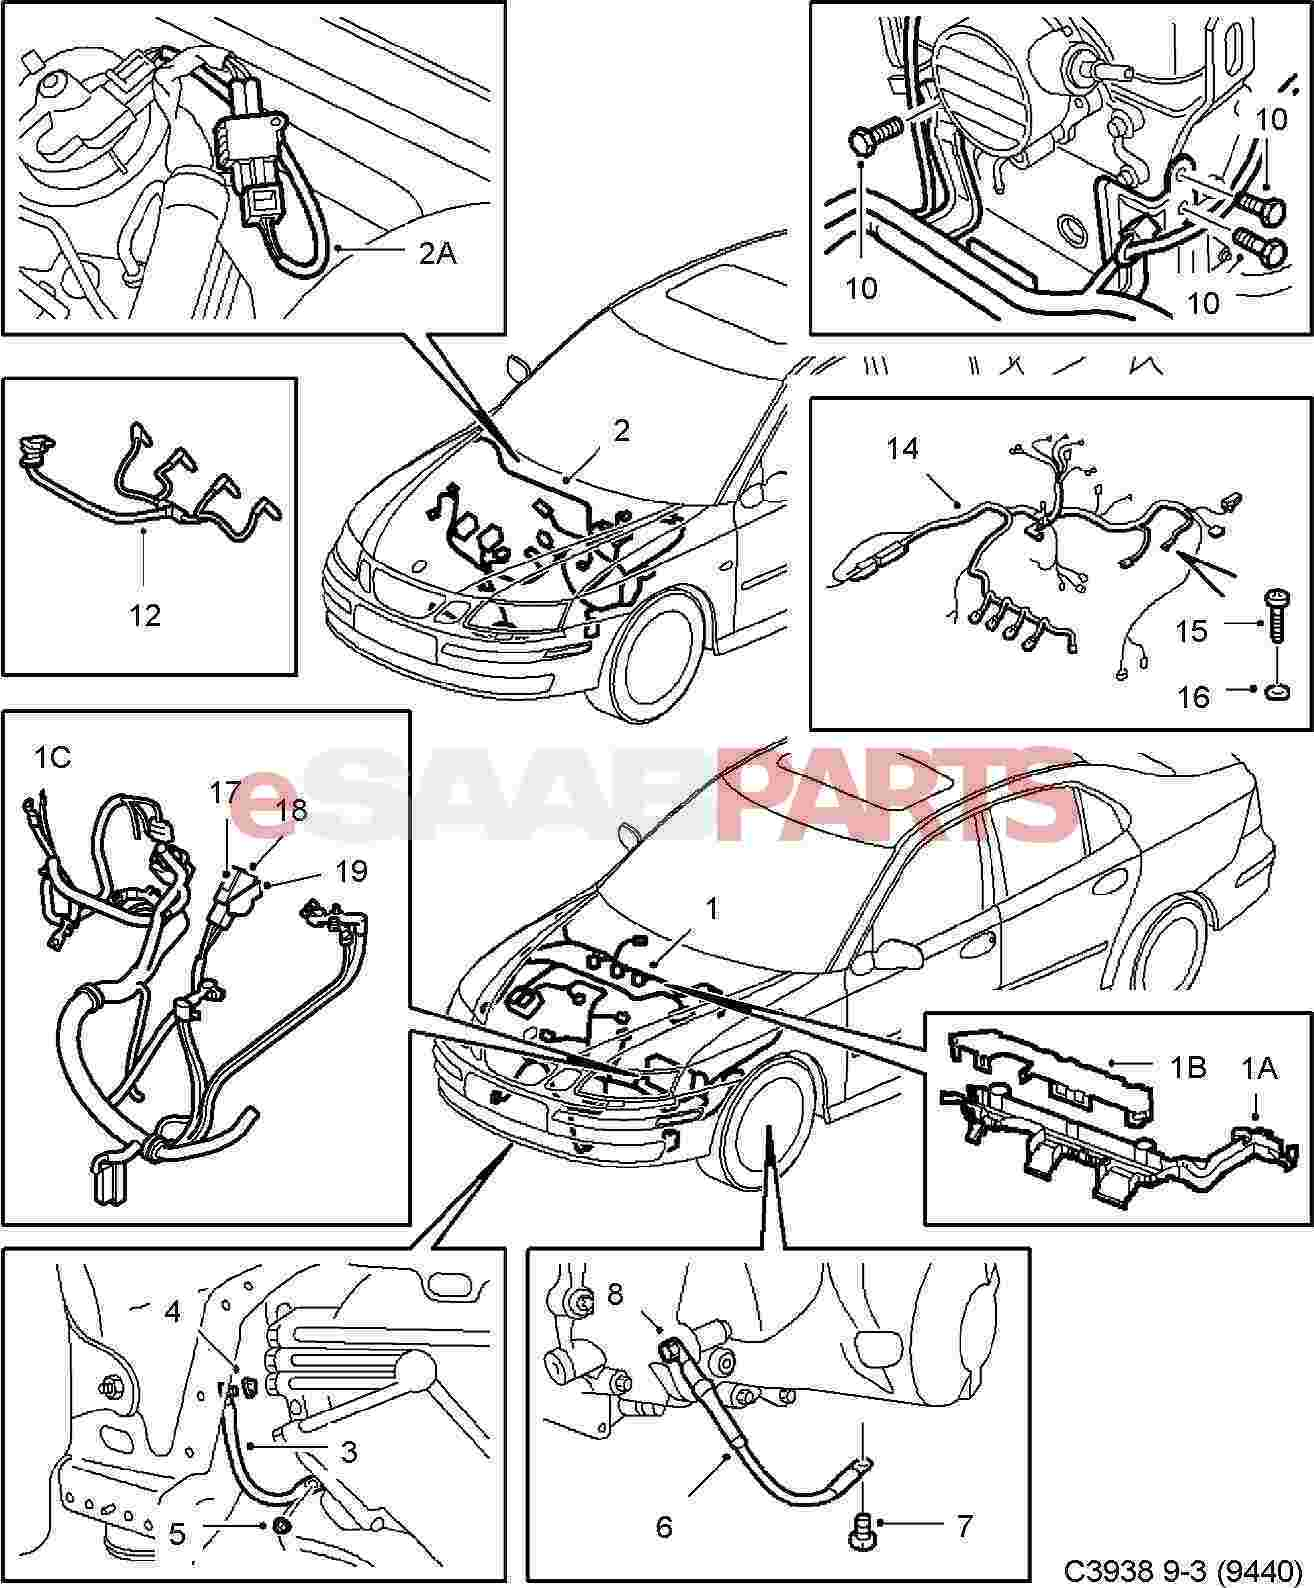 2002 Volvo S60 Engine Wire Diagram